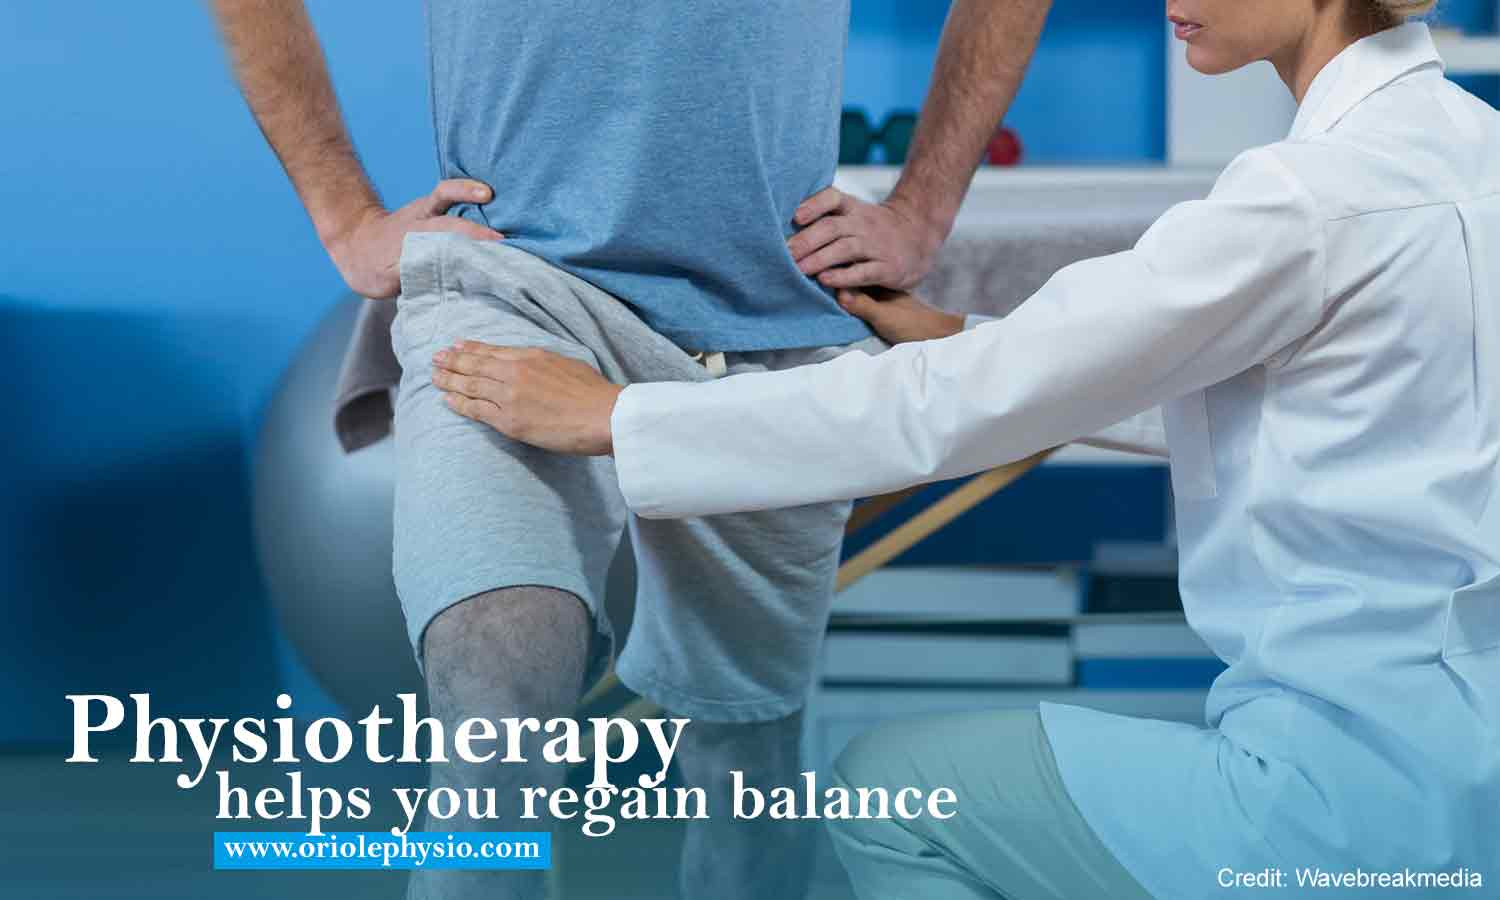 Physiotherapy helps you regain balance